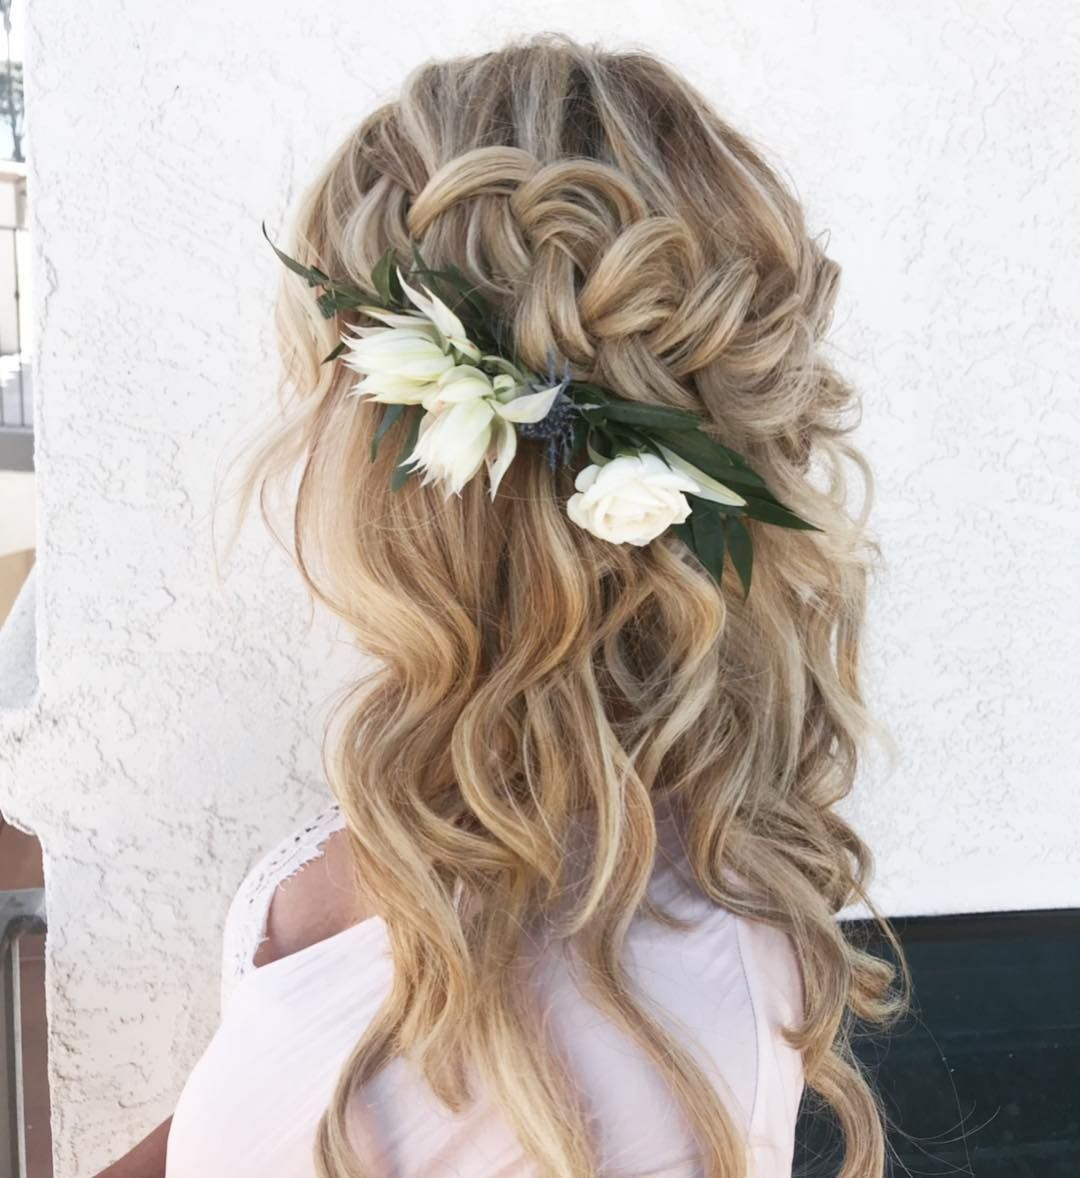 10 Glamorous Half Up Half Down Wedding Hairstyles From: Beautiful Braided Half Up Half Down Hairstyle